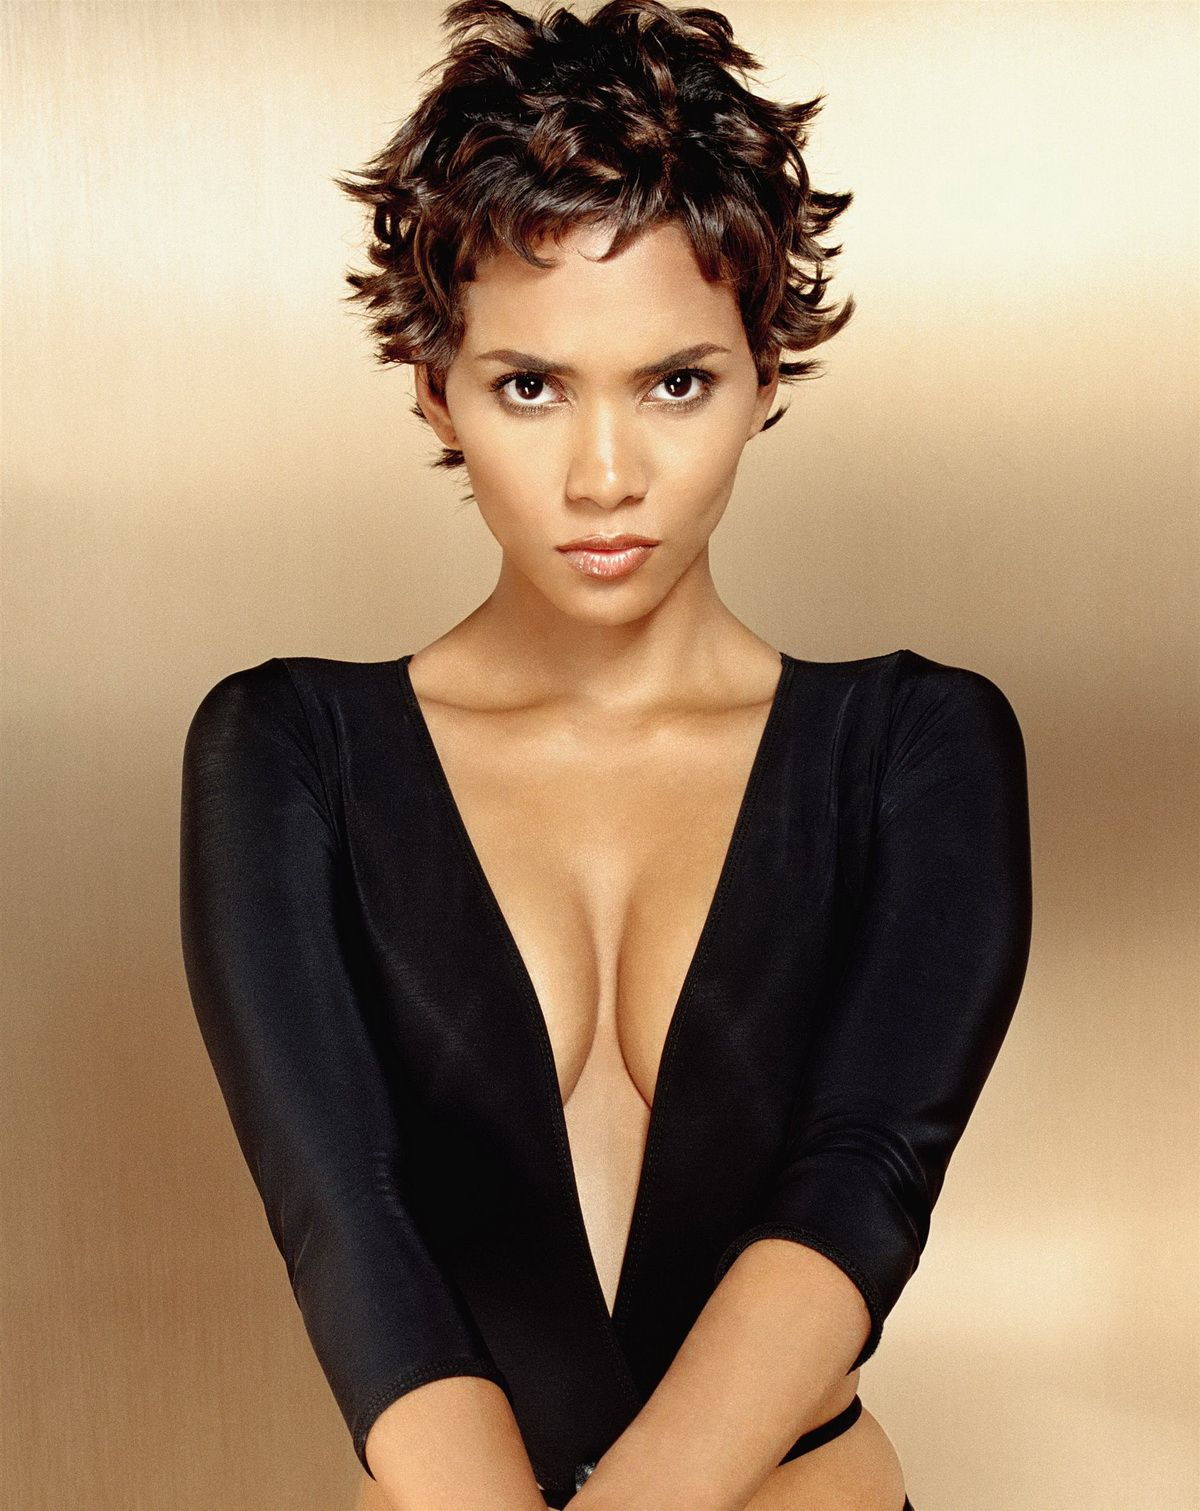 Halle Berry Full size Page 4 Cisse Halle berry